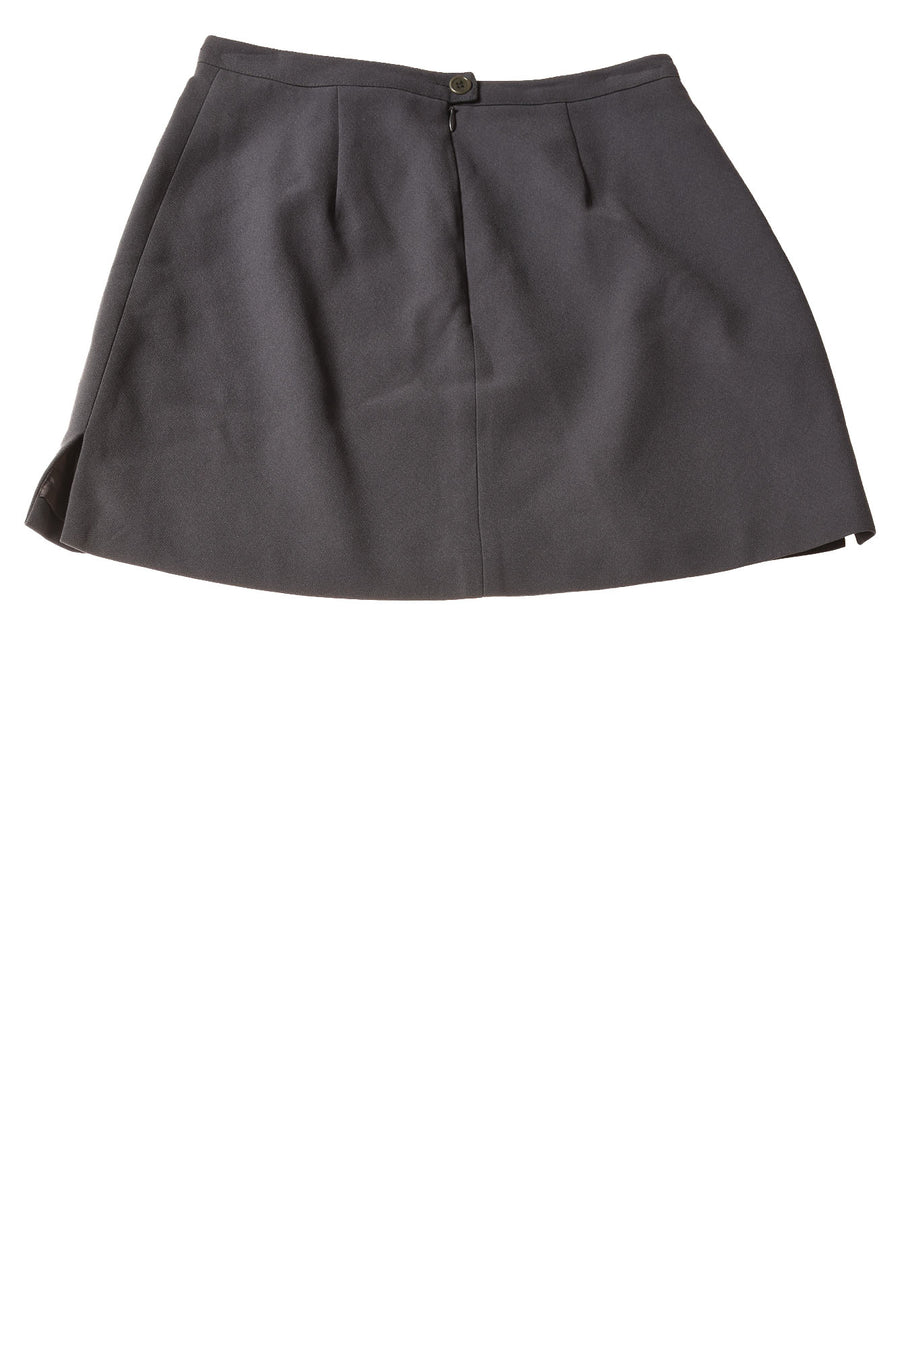 NEW BCBG Women's Skirt 4 Gray